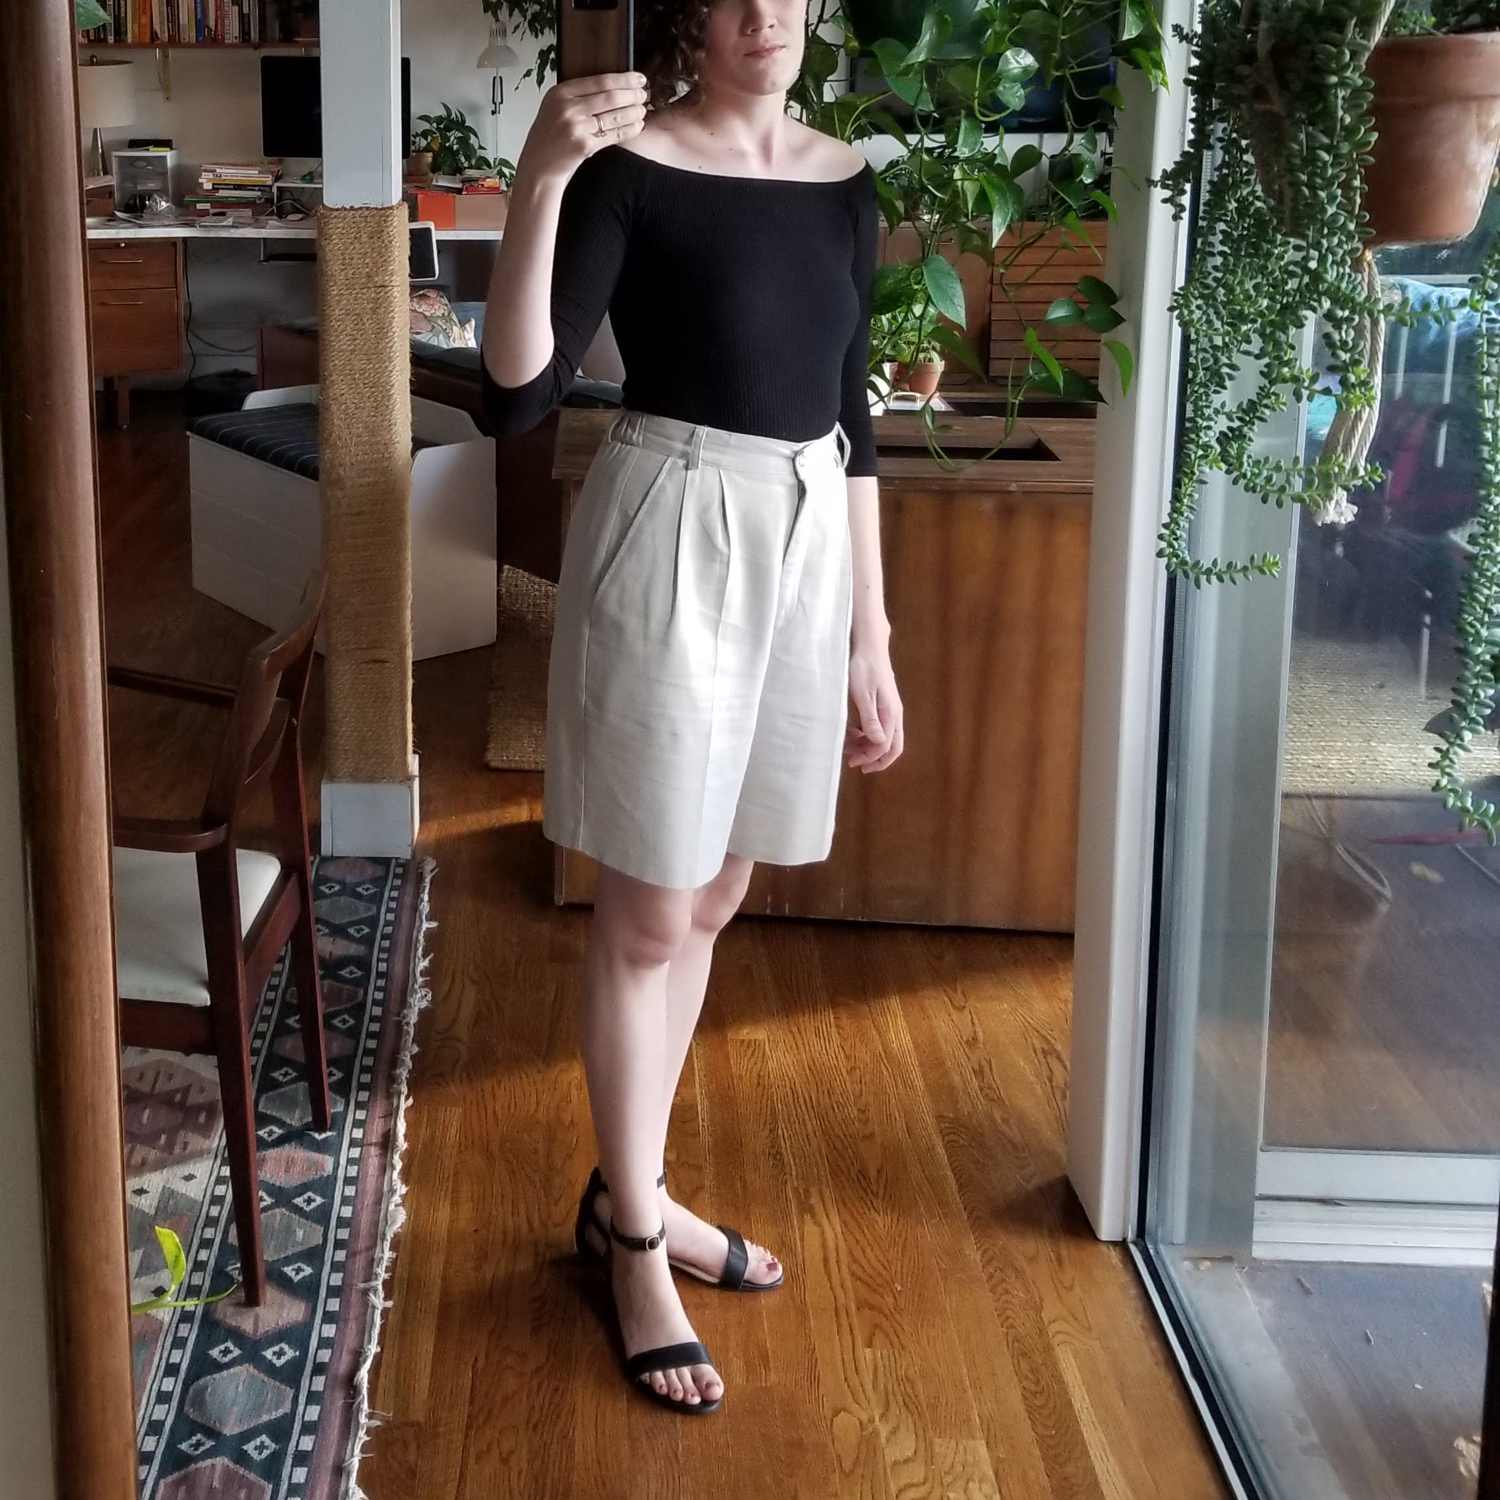 Saturday - May 26, 2018Check out these shorts! Remember me talking about blousy shorts? I finally found some and I love them.Shirt / Amour Vert (1H)Shorts / Vintage from Tara Lyn Evans Studio(2H)Shoes / Nisolo (2H)